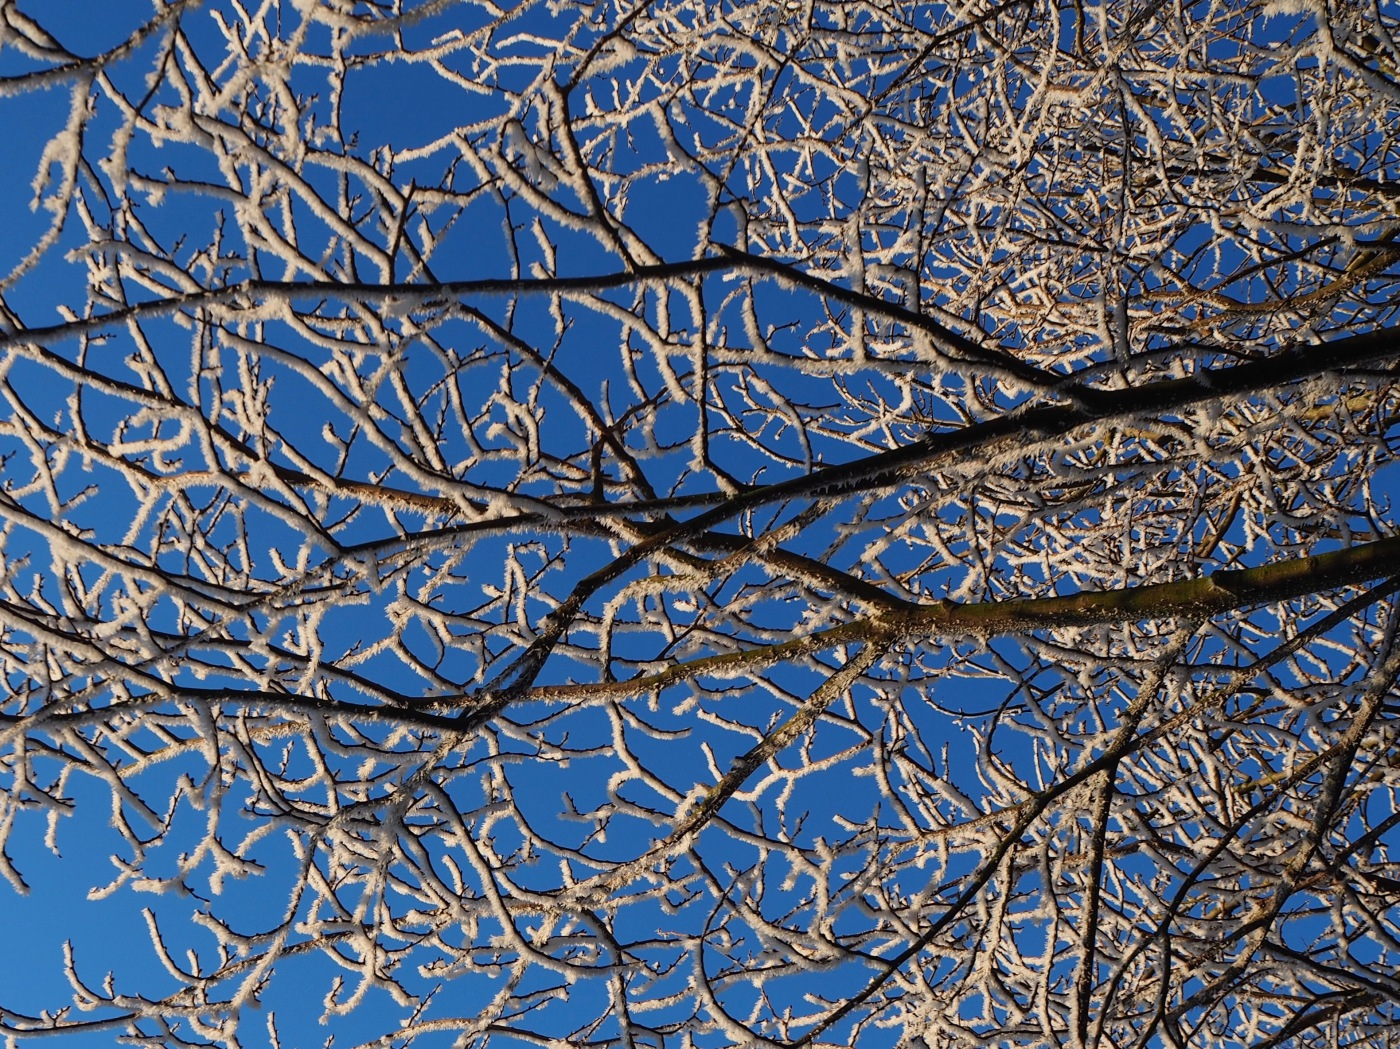 frosty branches blues sky